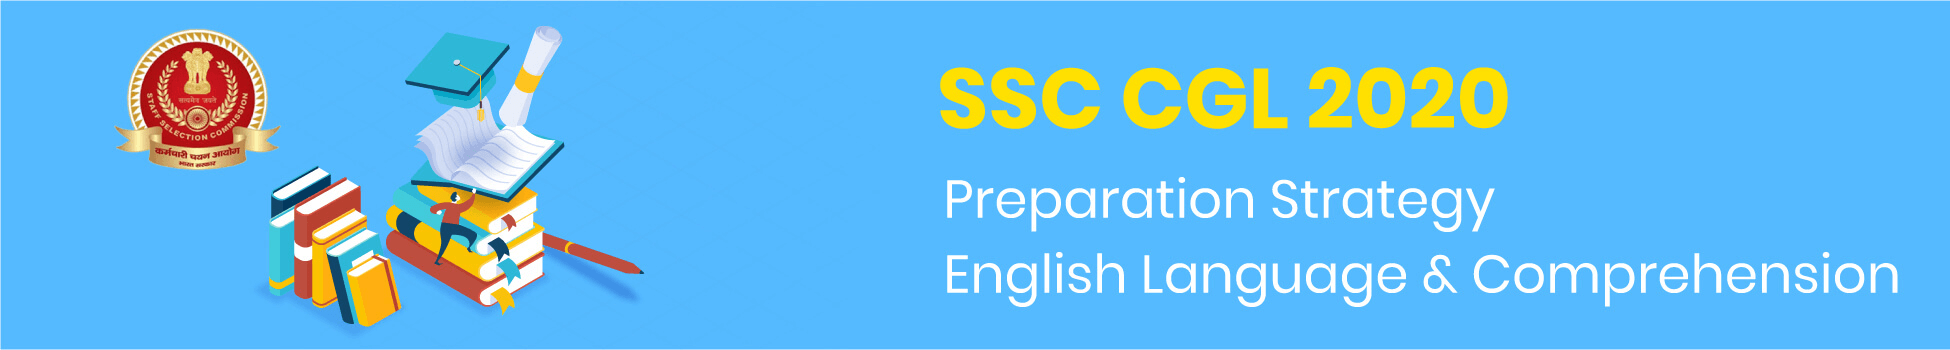 SSC CGL 2020 Preparation Strategy: English Language &Comprehension